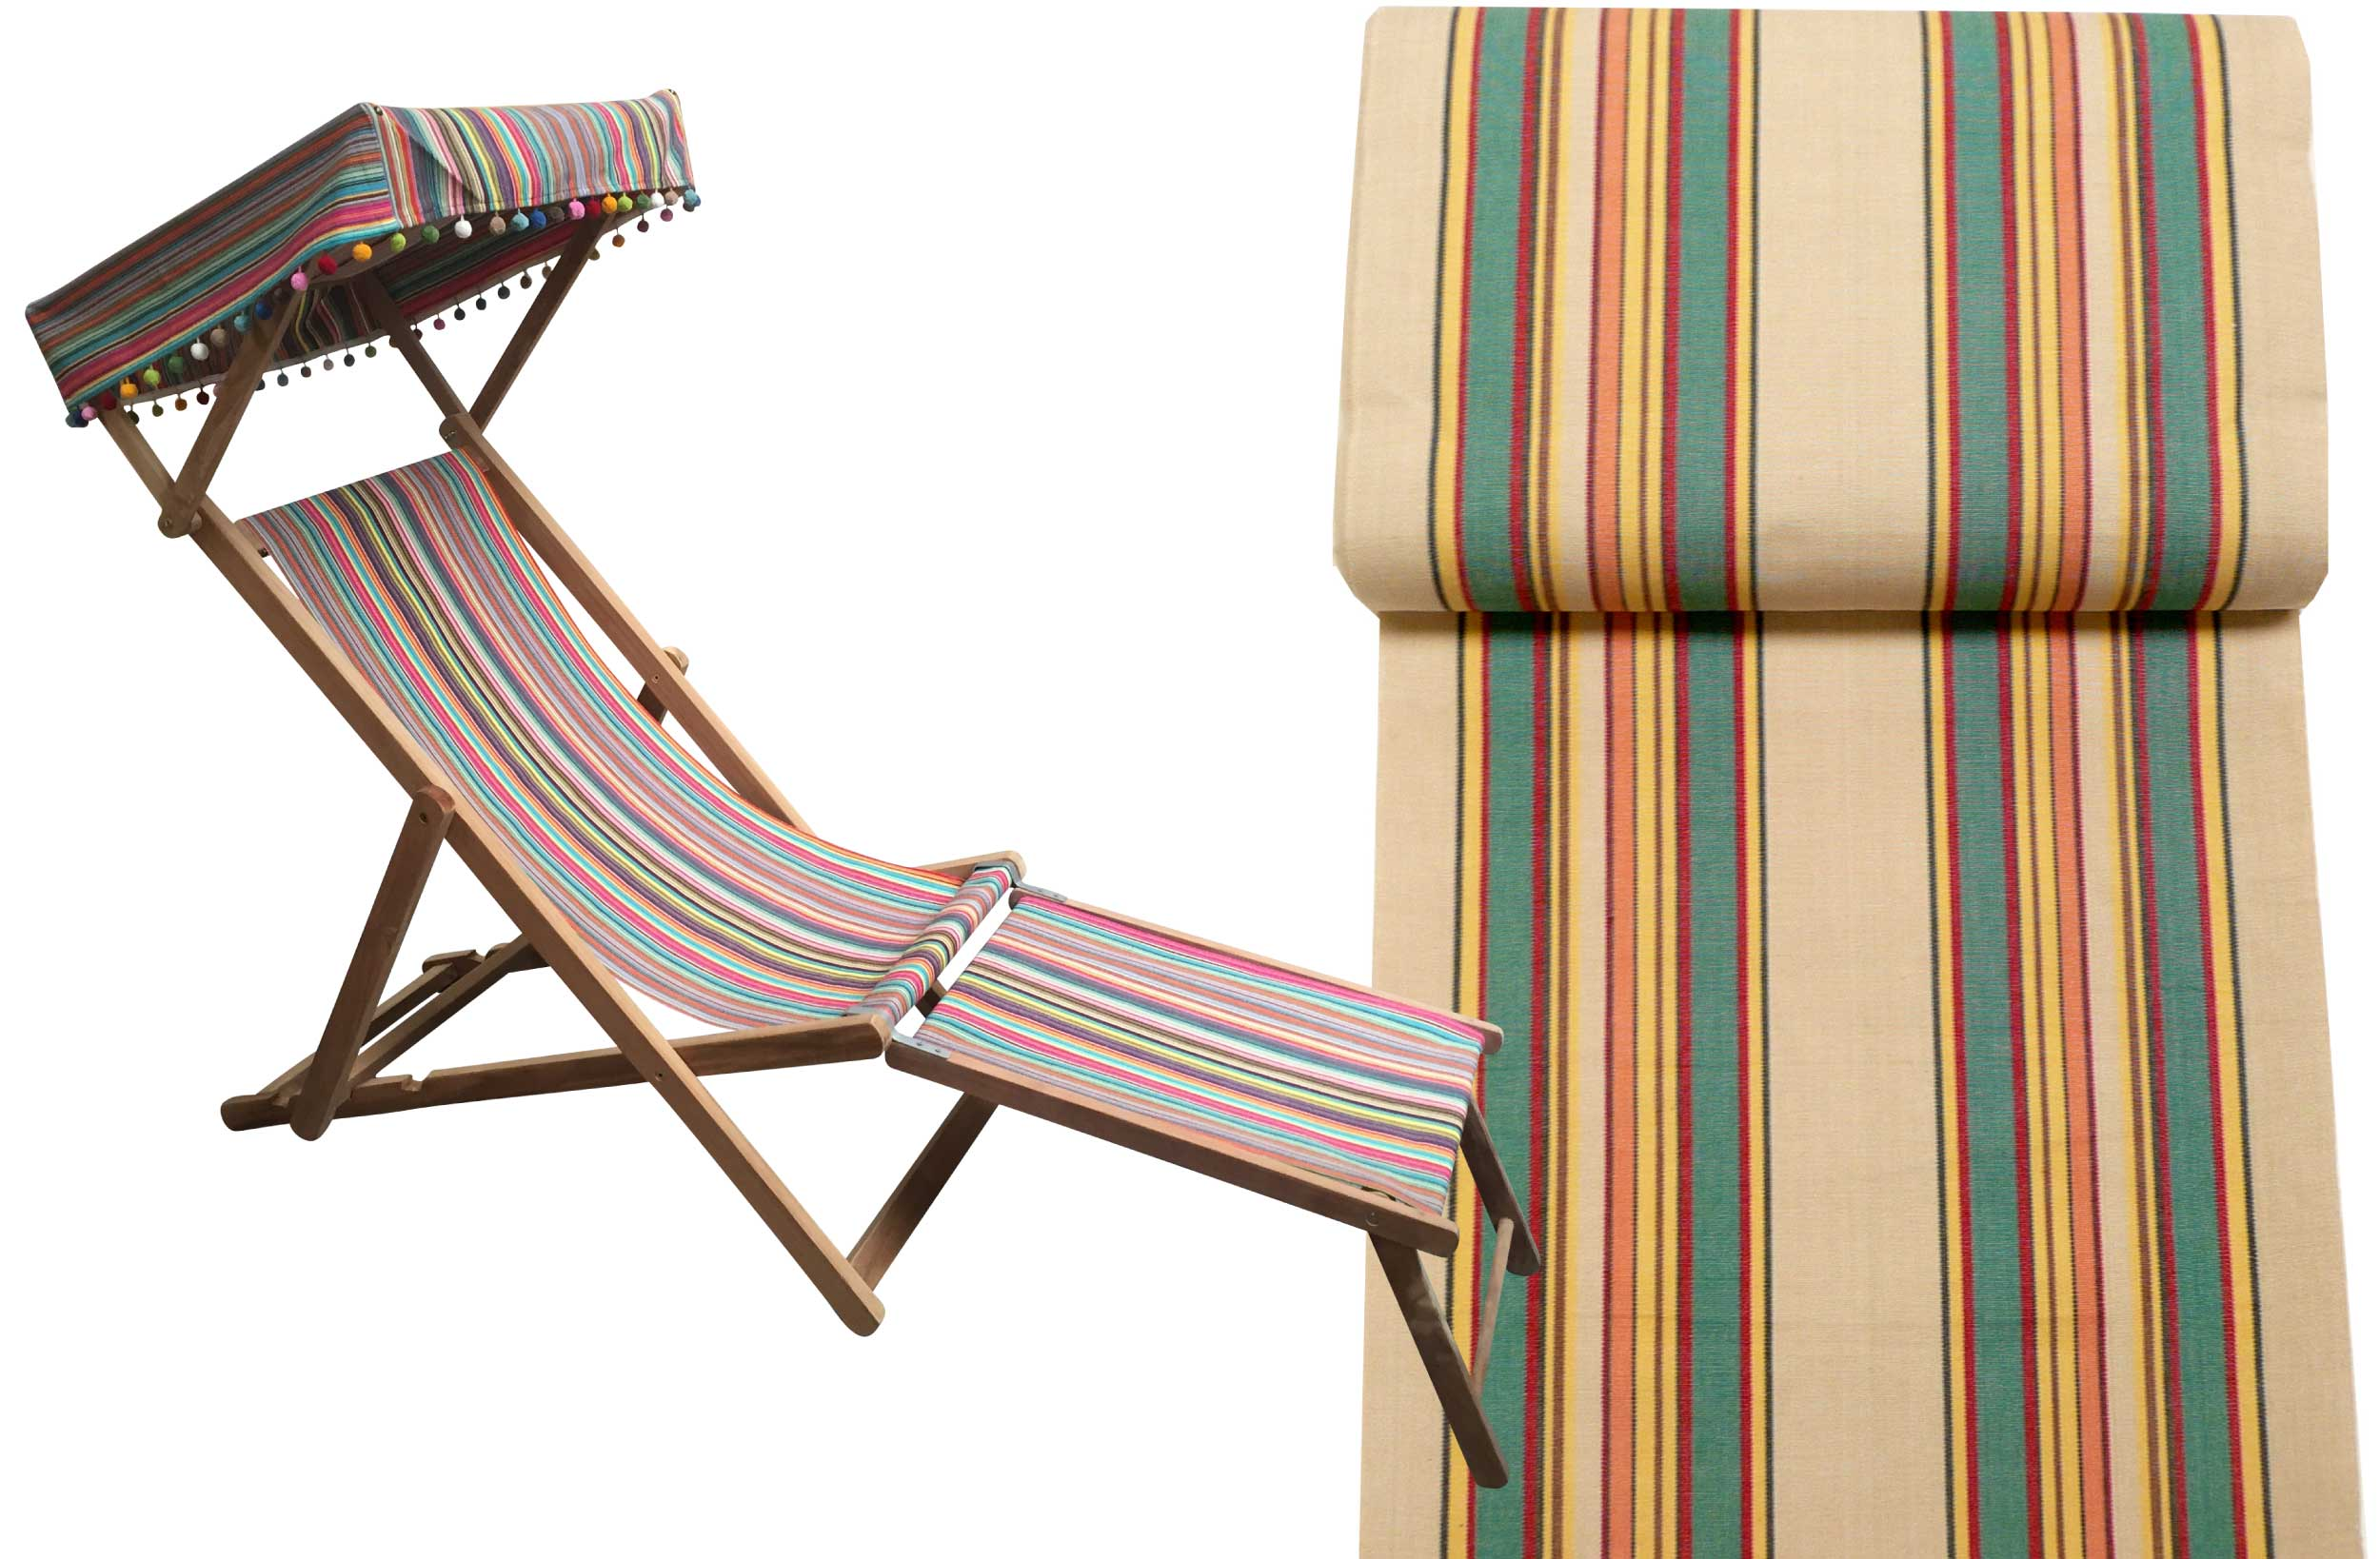 Delicieux Edwardian Deckchair With Canopy And Footstool Beige, Jade Green, Red Stripes